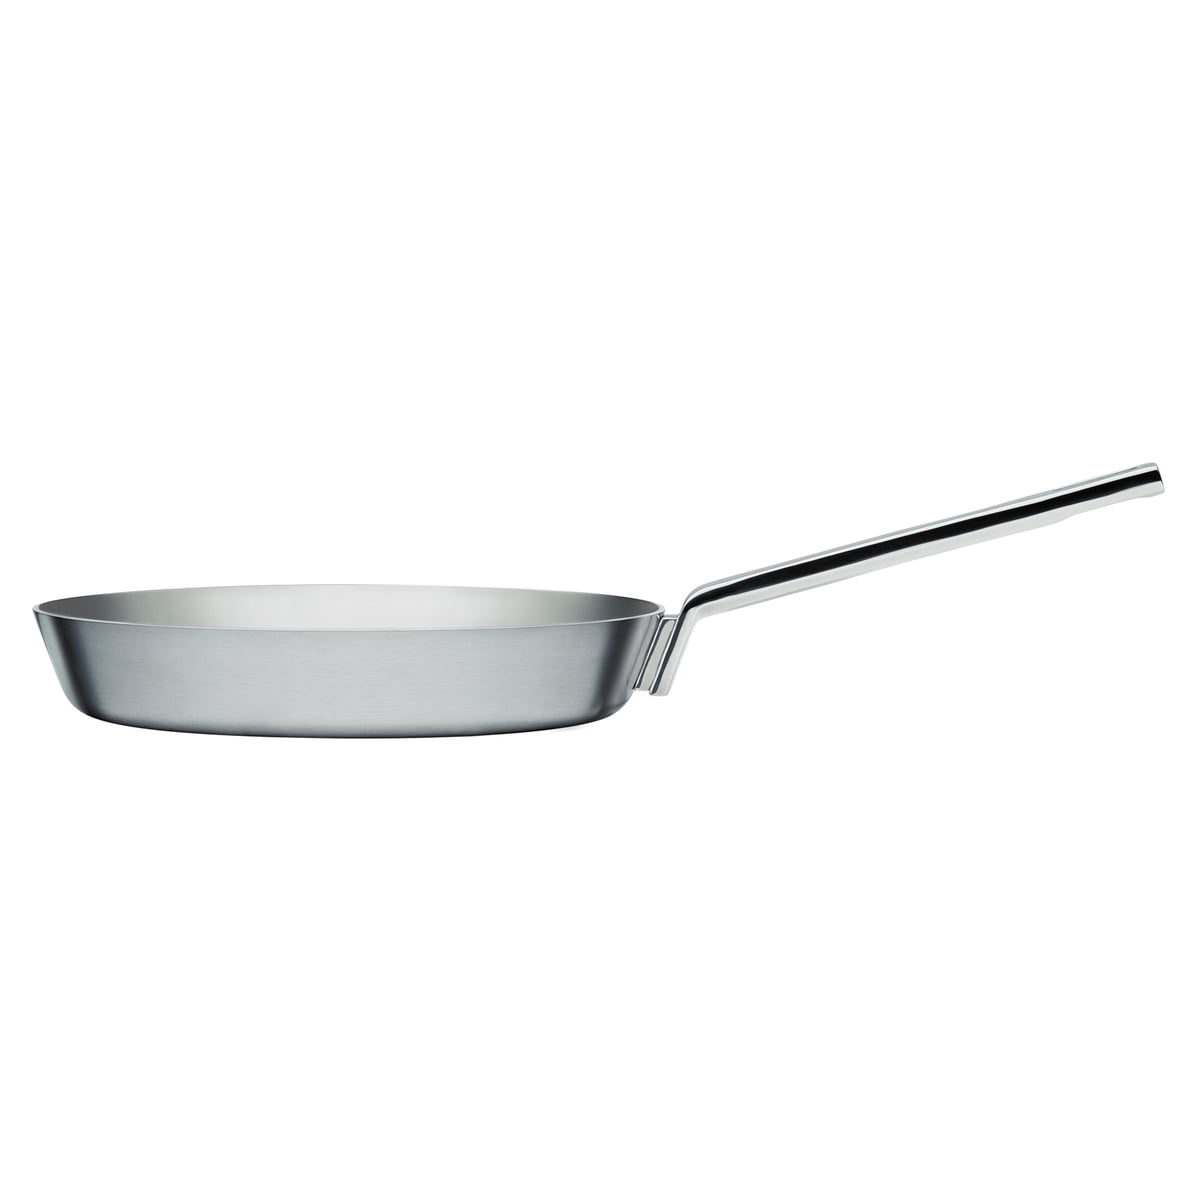 Tools professional frying pan by Iittala in the shop - Iittala - Tools frying pan, Ø 28 cm